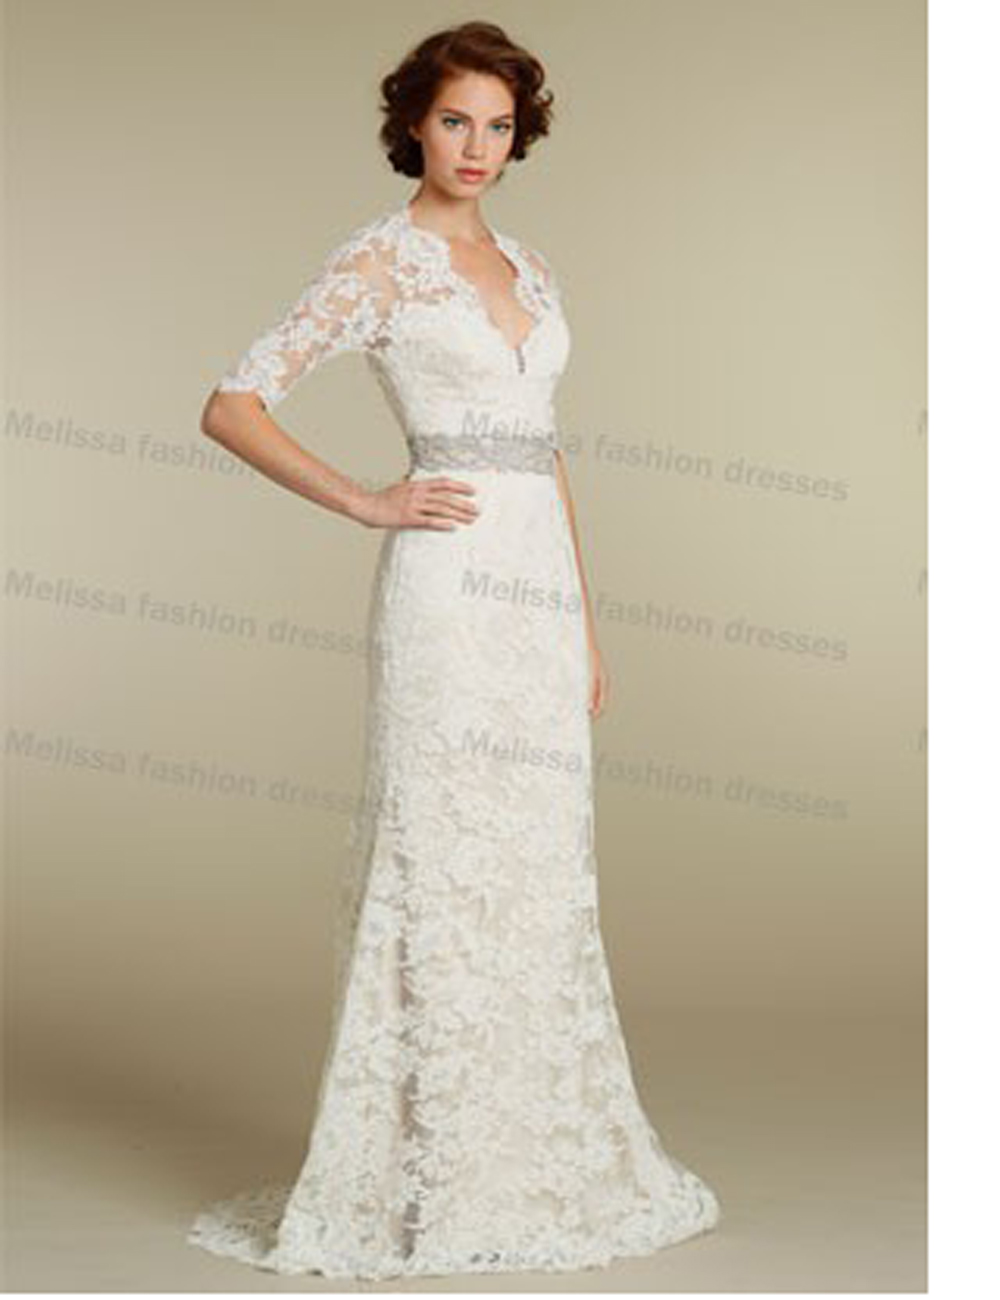 New V Neckline Empire Waist 3 4 Sleeves Lace Backless Key Hole Sheath Modest Wedding Gown Bridal Dresses In From Weddings Events On